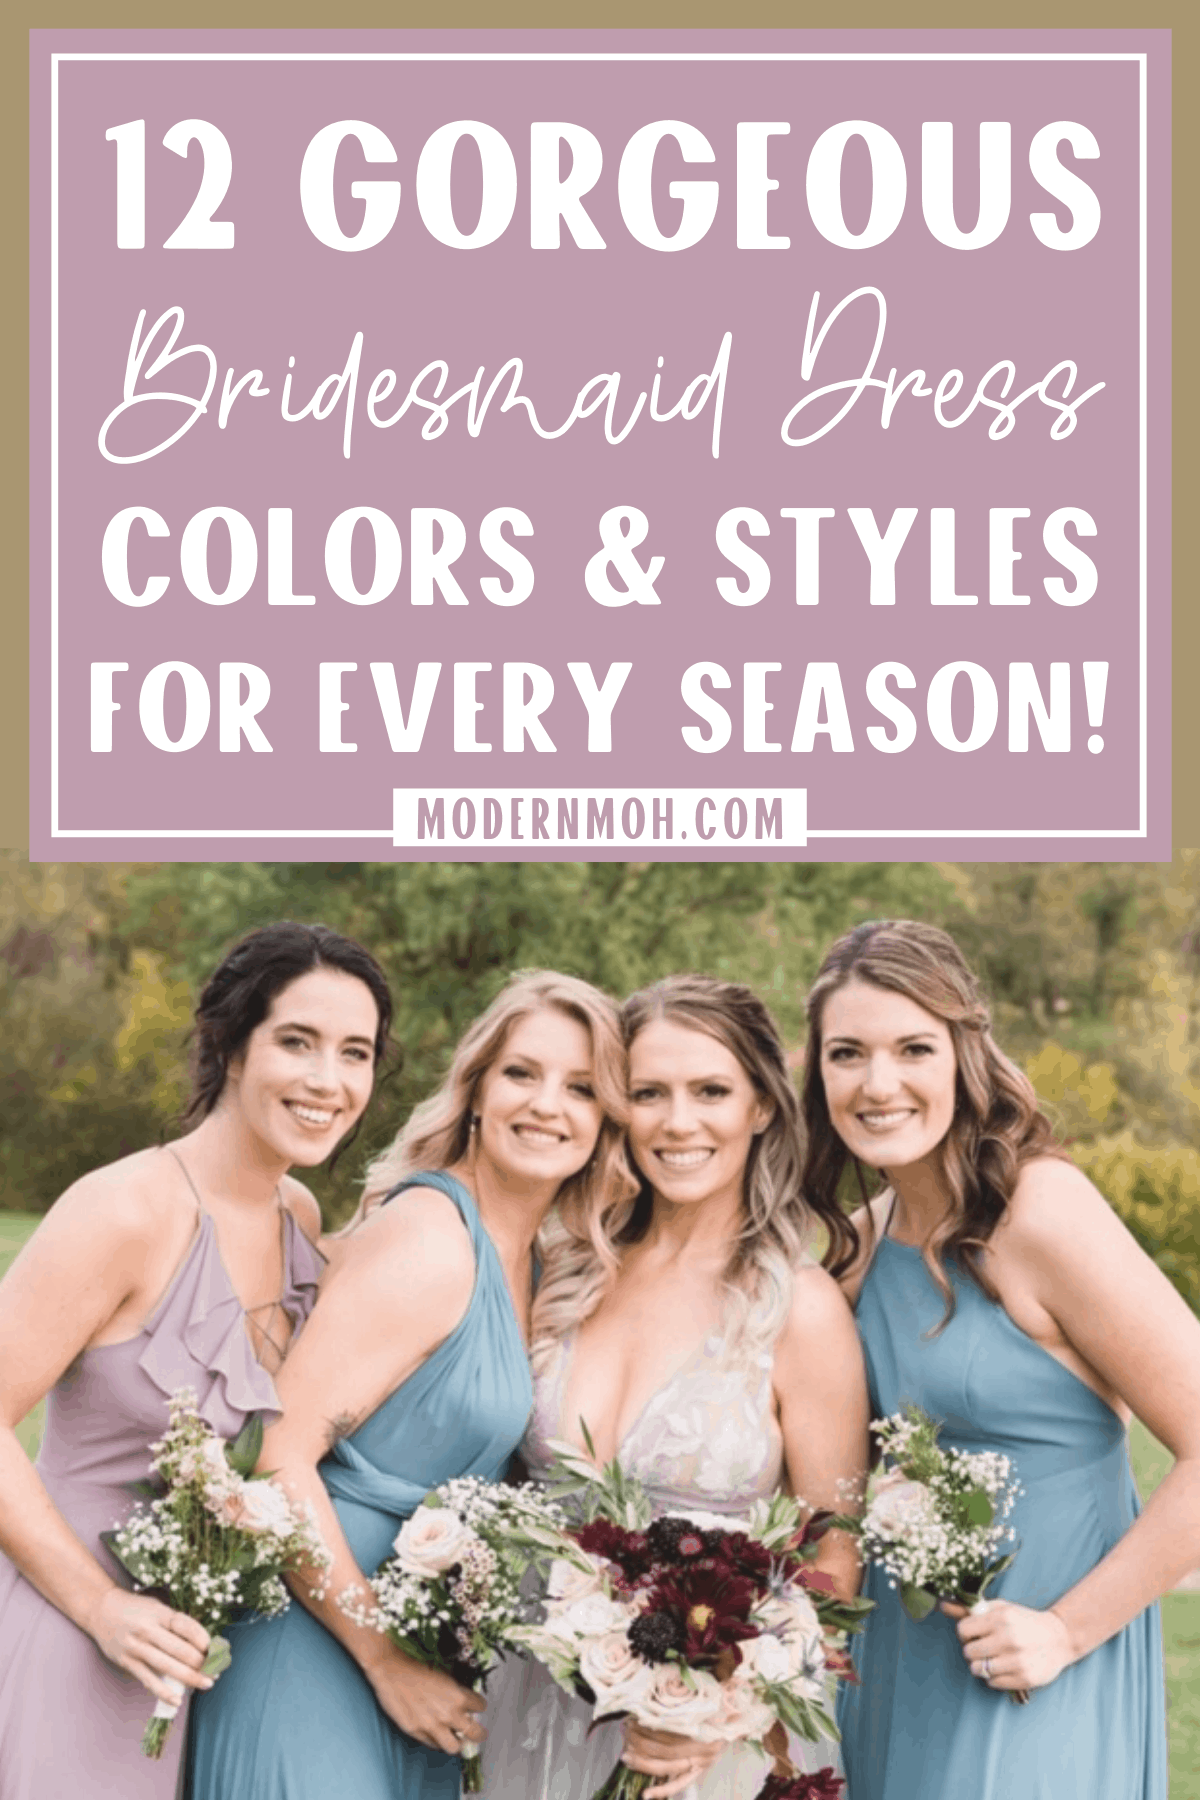 The Best Bridesmaid Dresses for Every Season